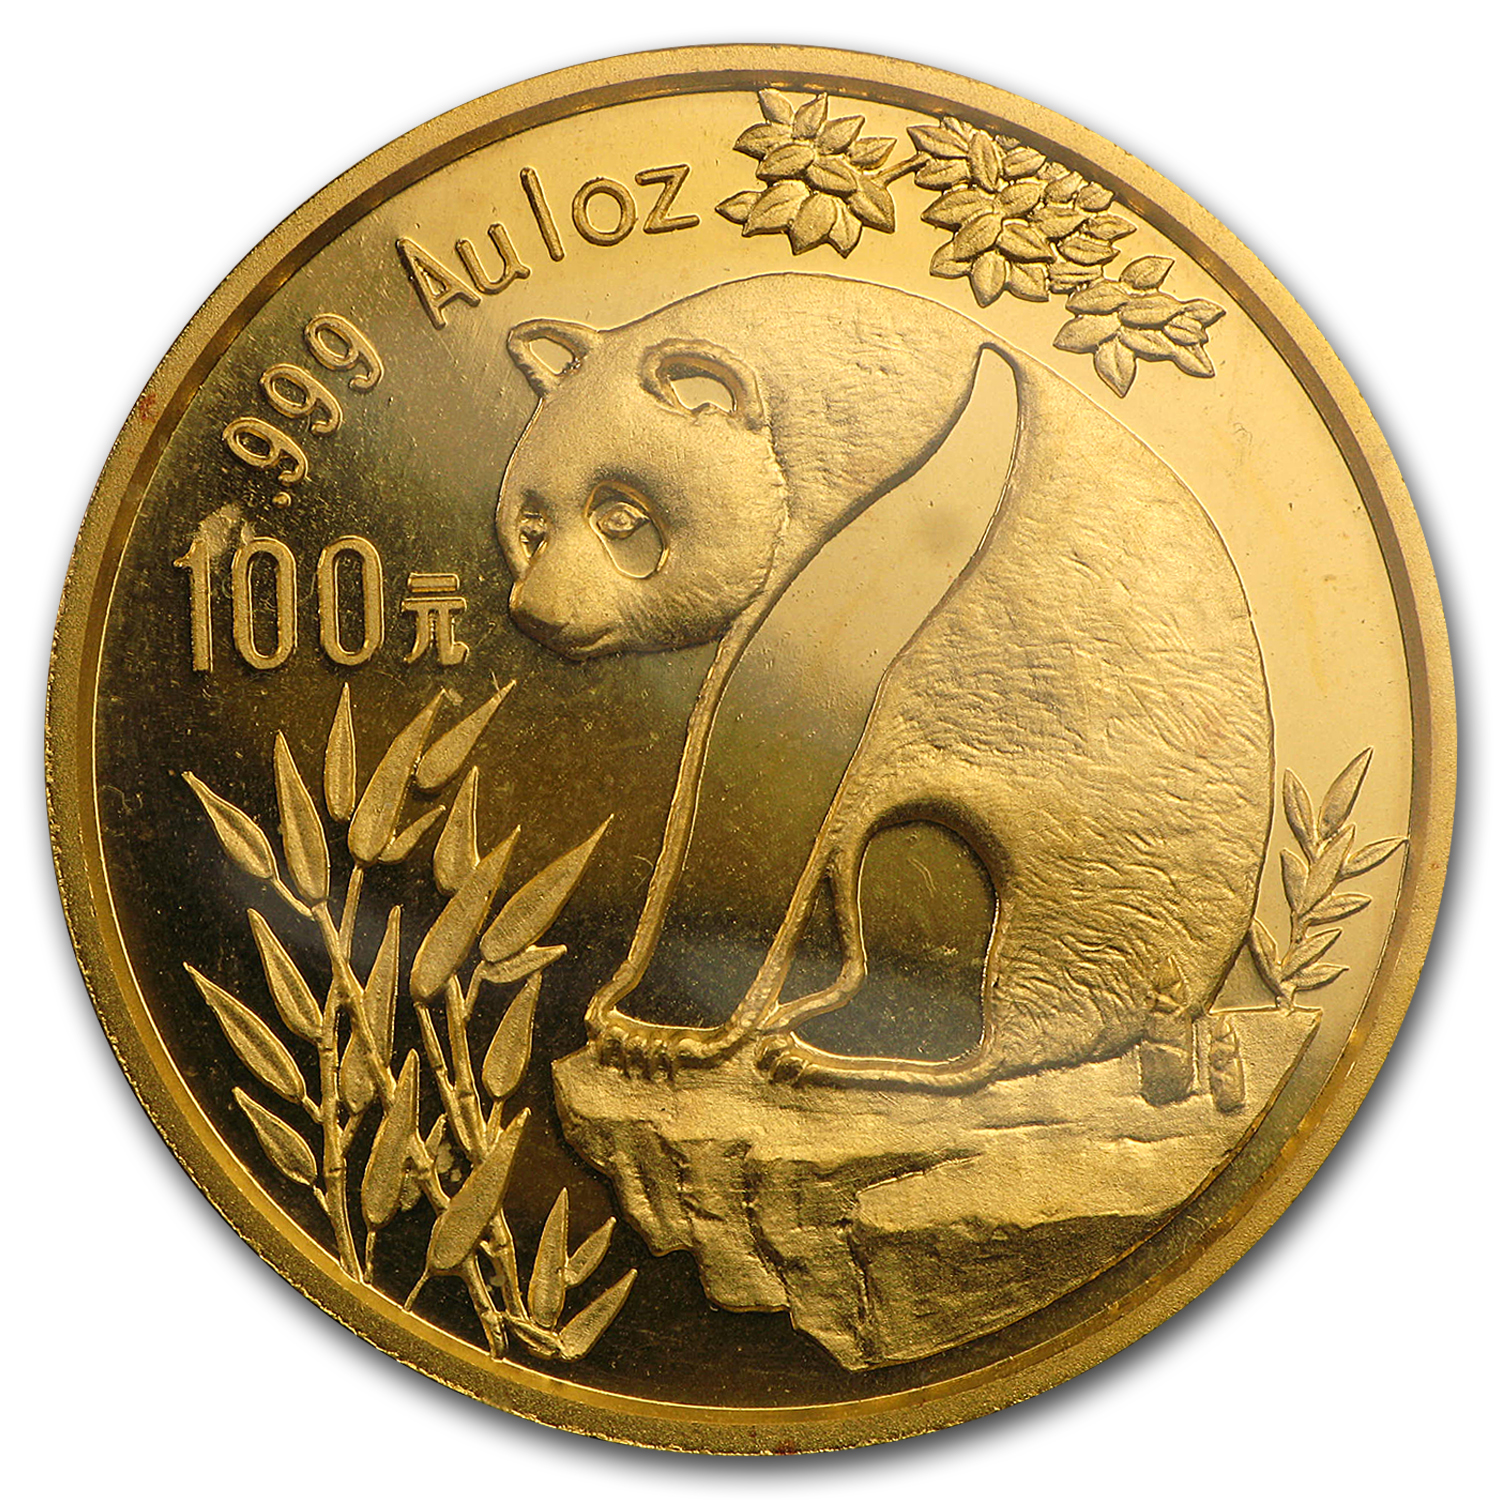 1993 1 oz Gold Chinese Panda Small Date BU (Sealed)